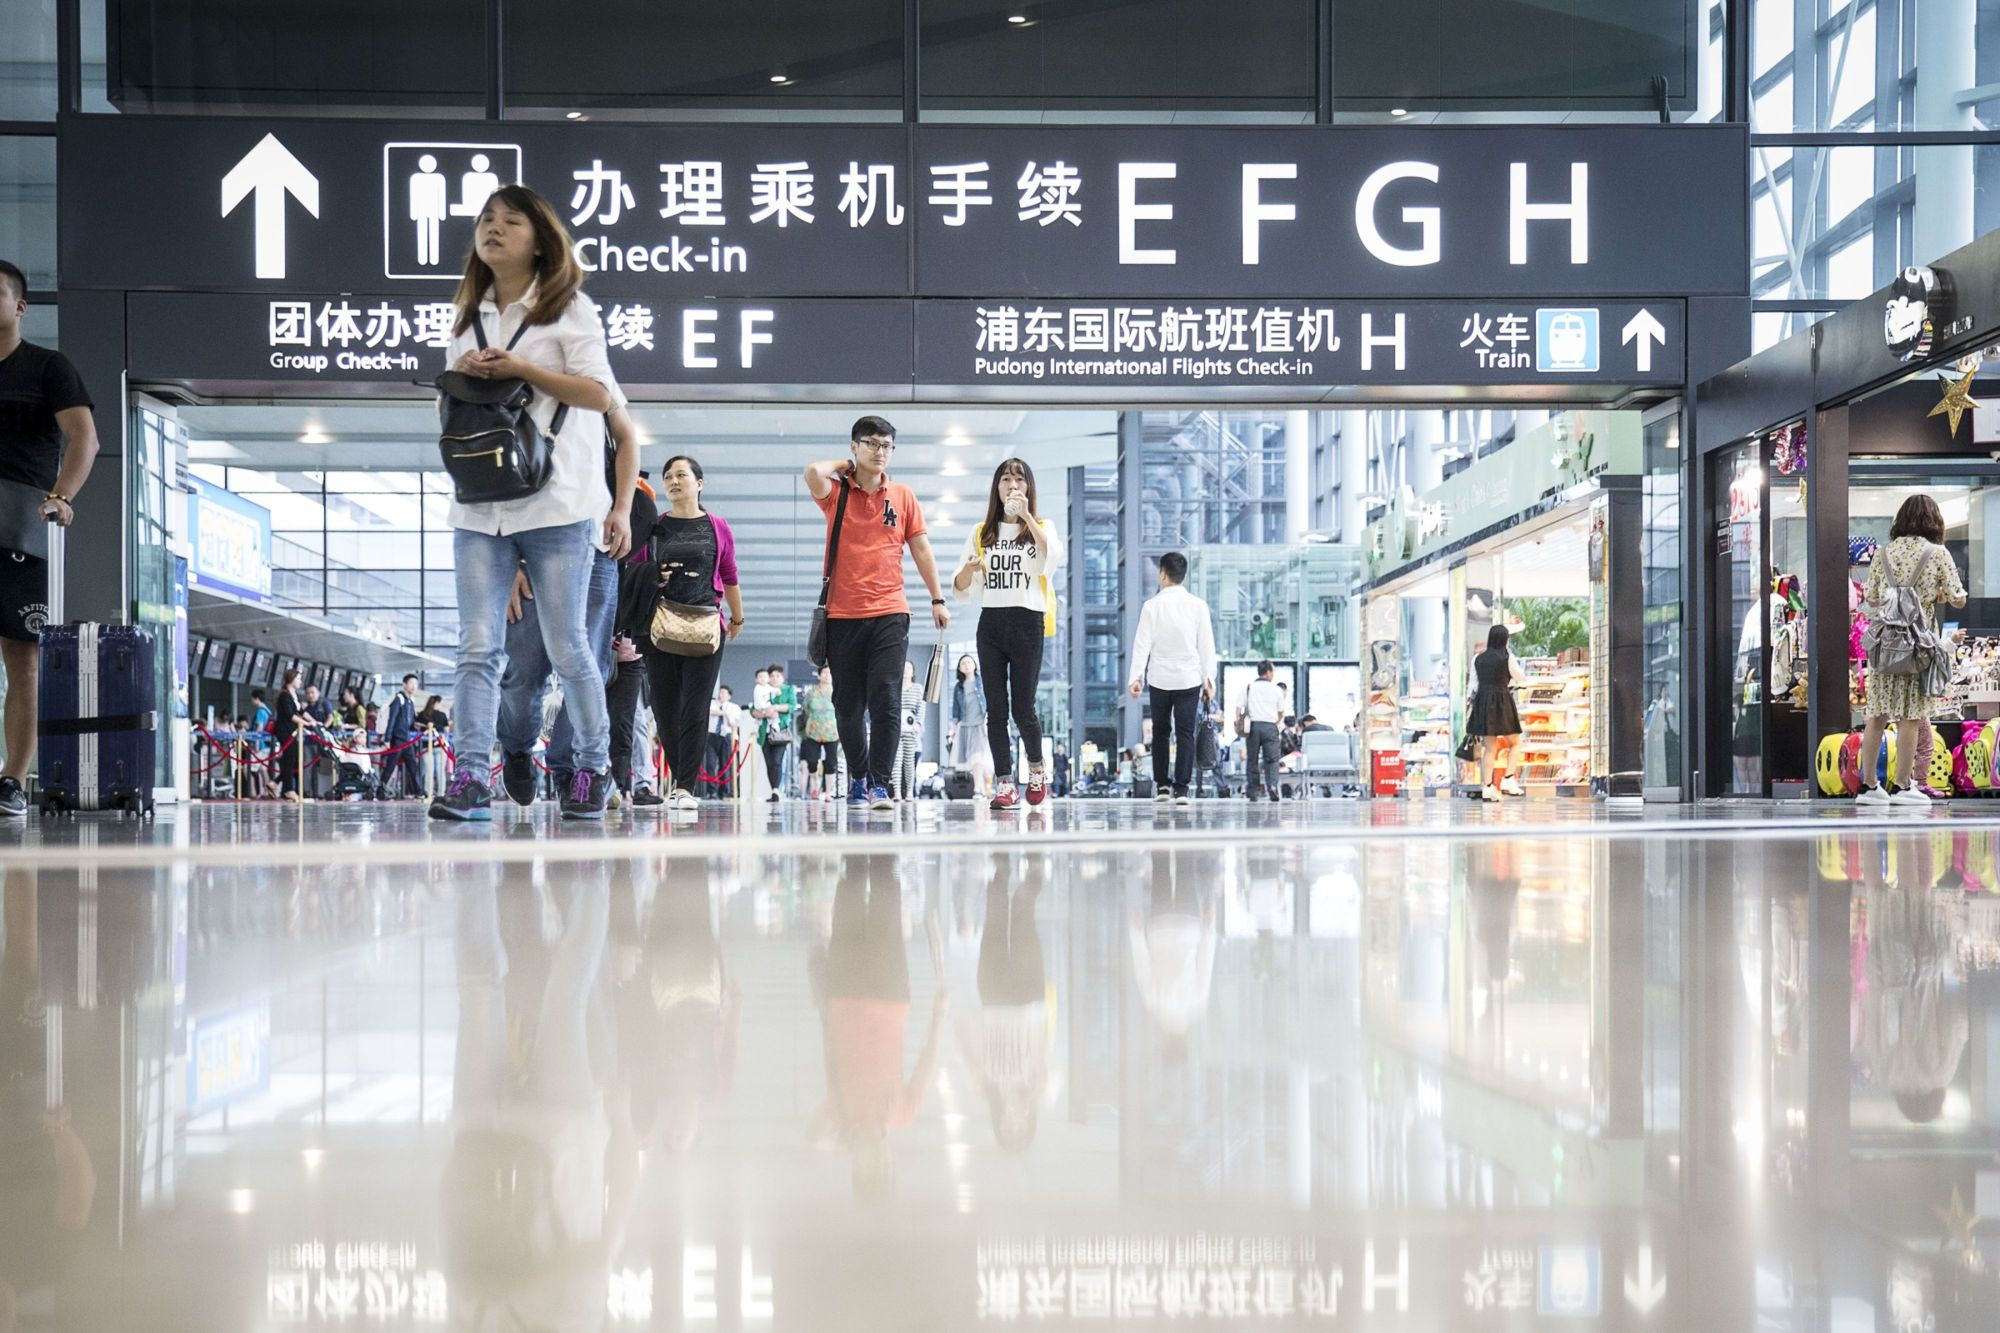 Travelers walk through Shanghai's Hongqiao Airport. The Japanese and Chinese governments are reportedly discussing an increase in the number of flights linking Shanghai and Japanese cities to alleviate congestion and improve security. | BLOOMBERG